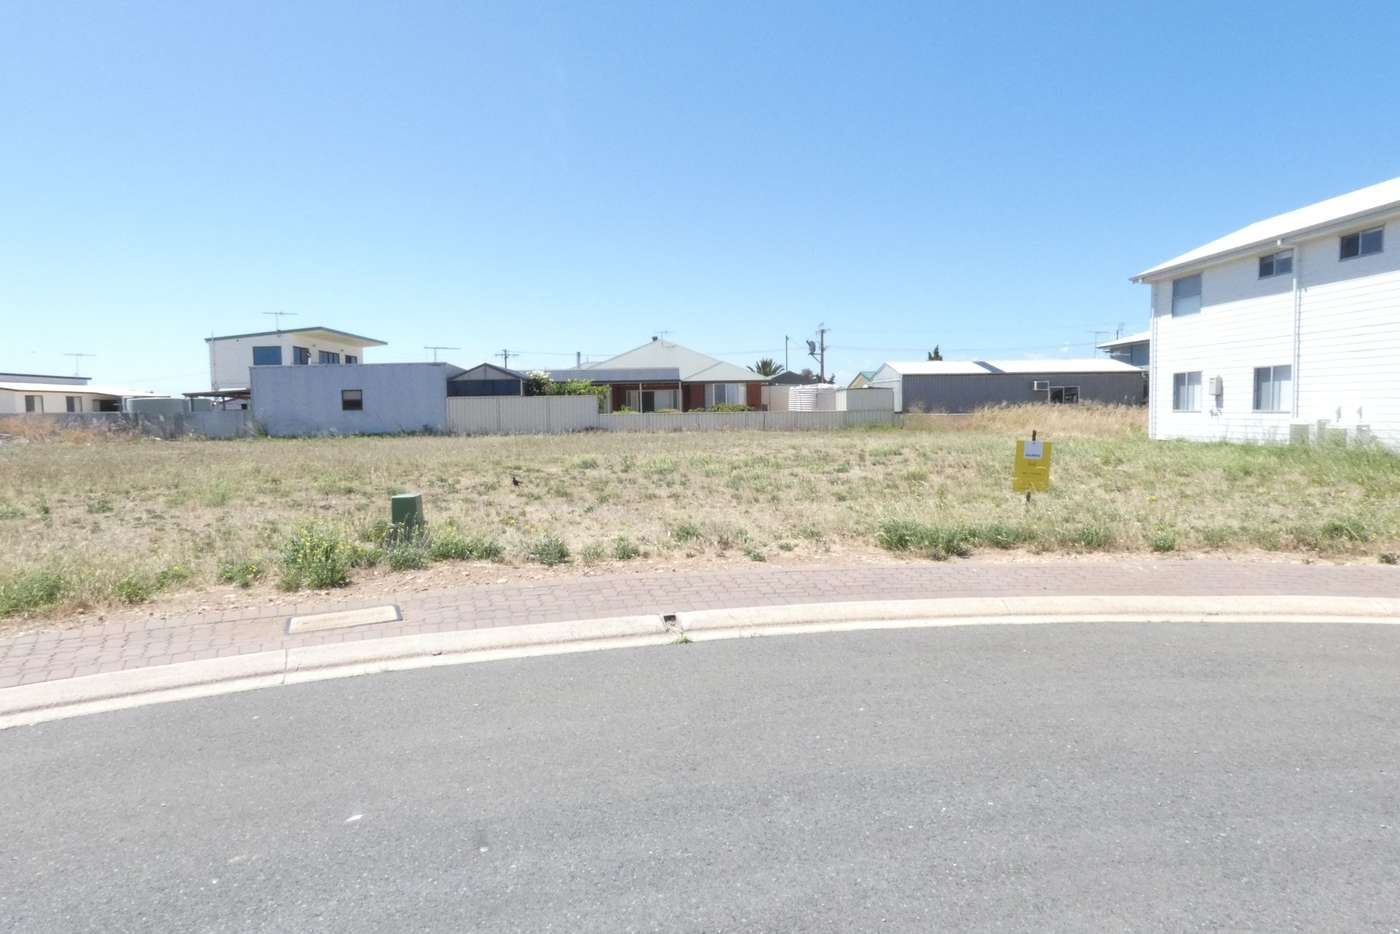 Main view of Homely residentialLand listing, 8 (Lot 5) Clan Ranald Avenue, Edithburgh SA 5583